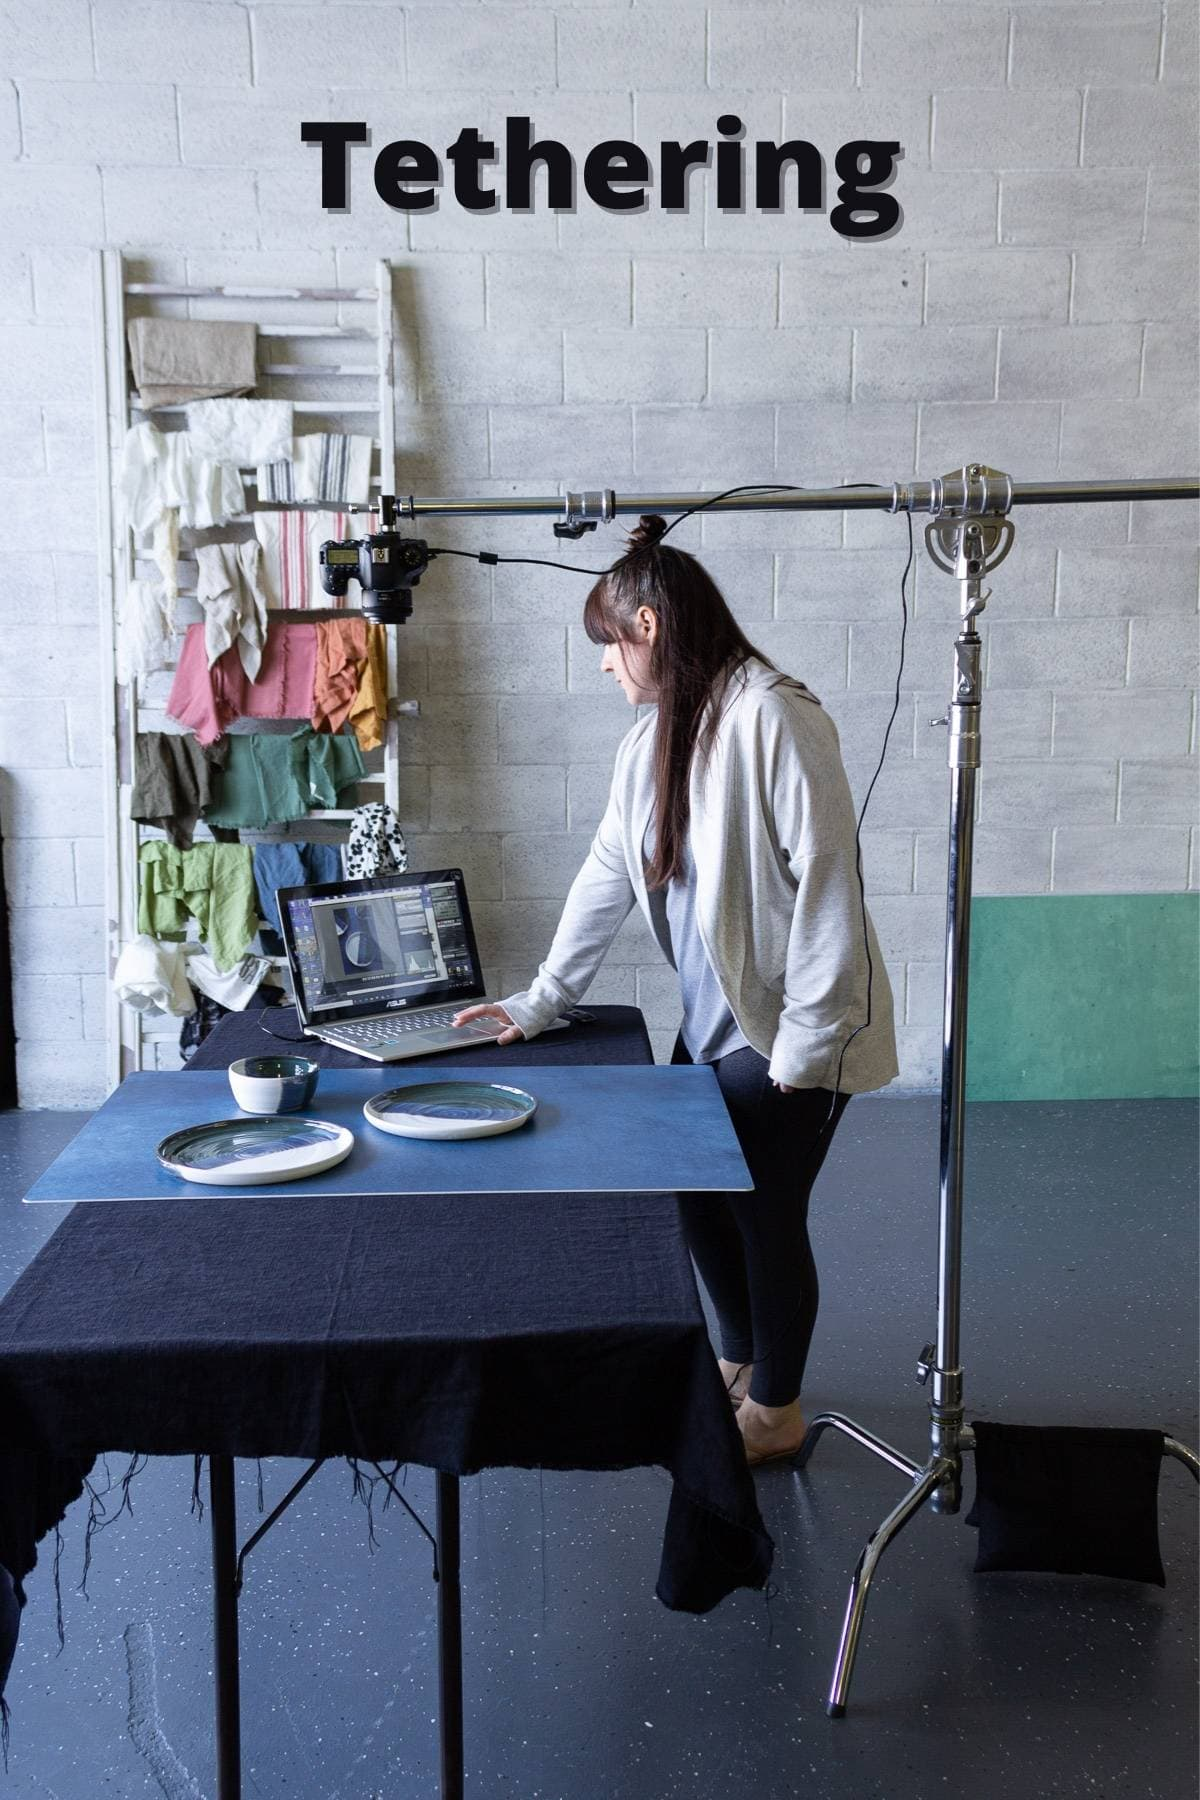 A person standing by a computer with a c-stand